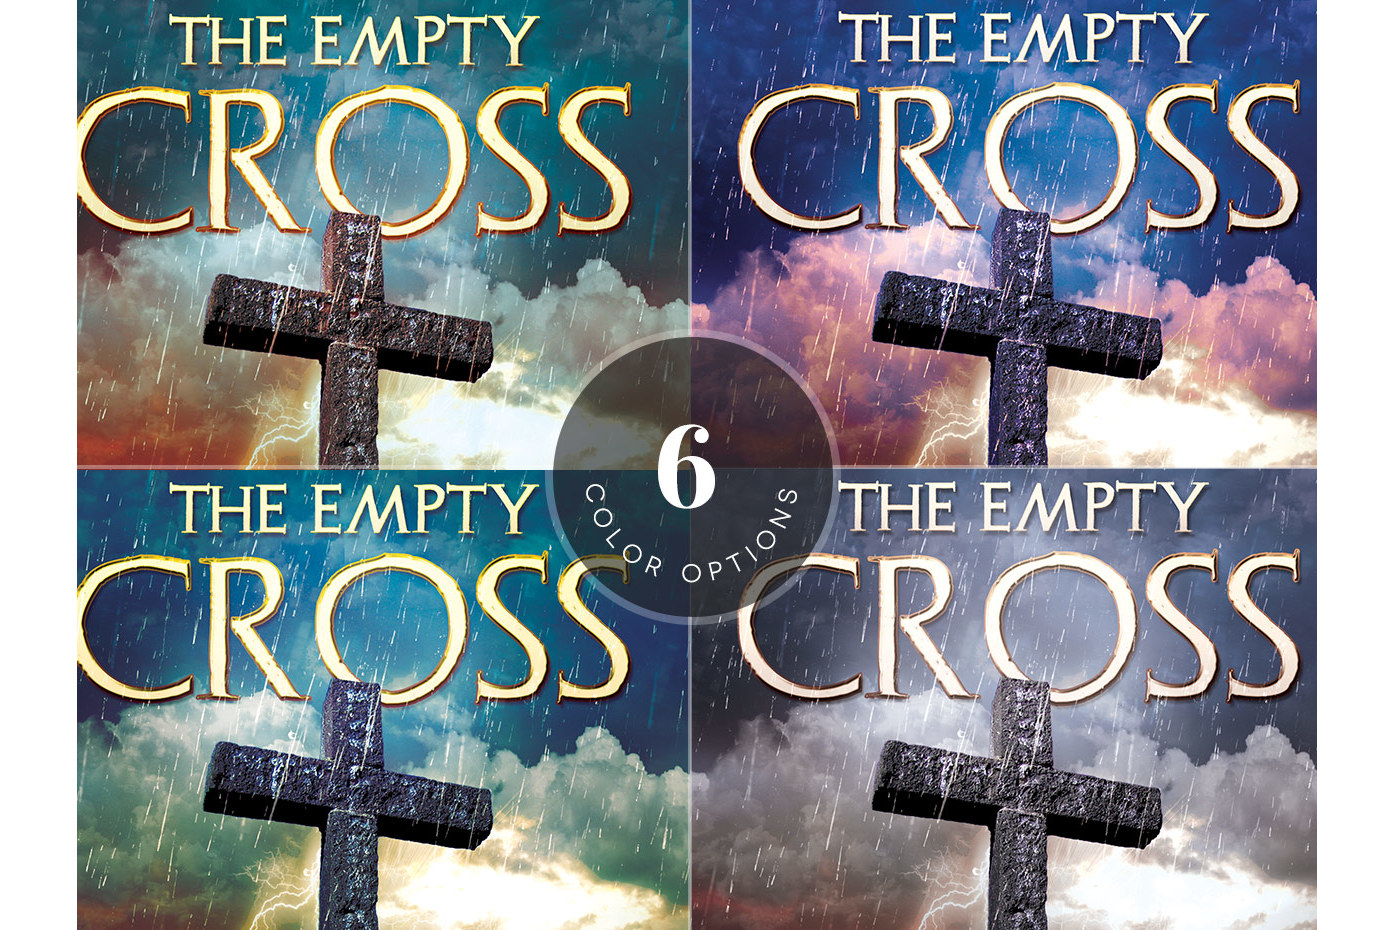 Empty Cross Easter Flyer Template Example Image 3